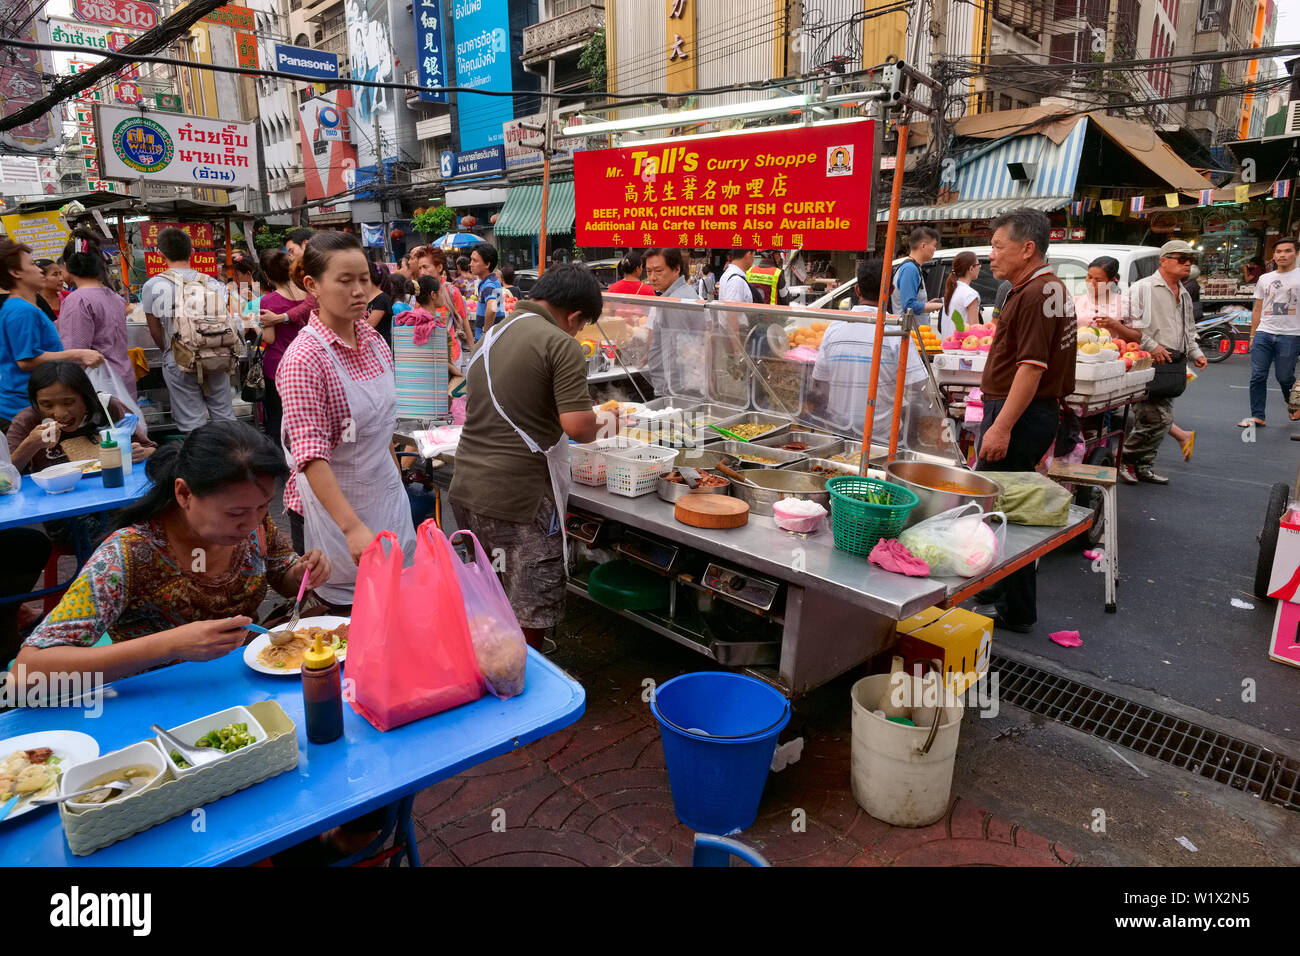 Food Stalls In Busy Old Market Or Talad Gao Area At Yaowarat Road Chinatown Bangkok Thailand Doing Brisk Early Evening Business Stock Photo Alamy